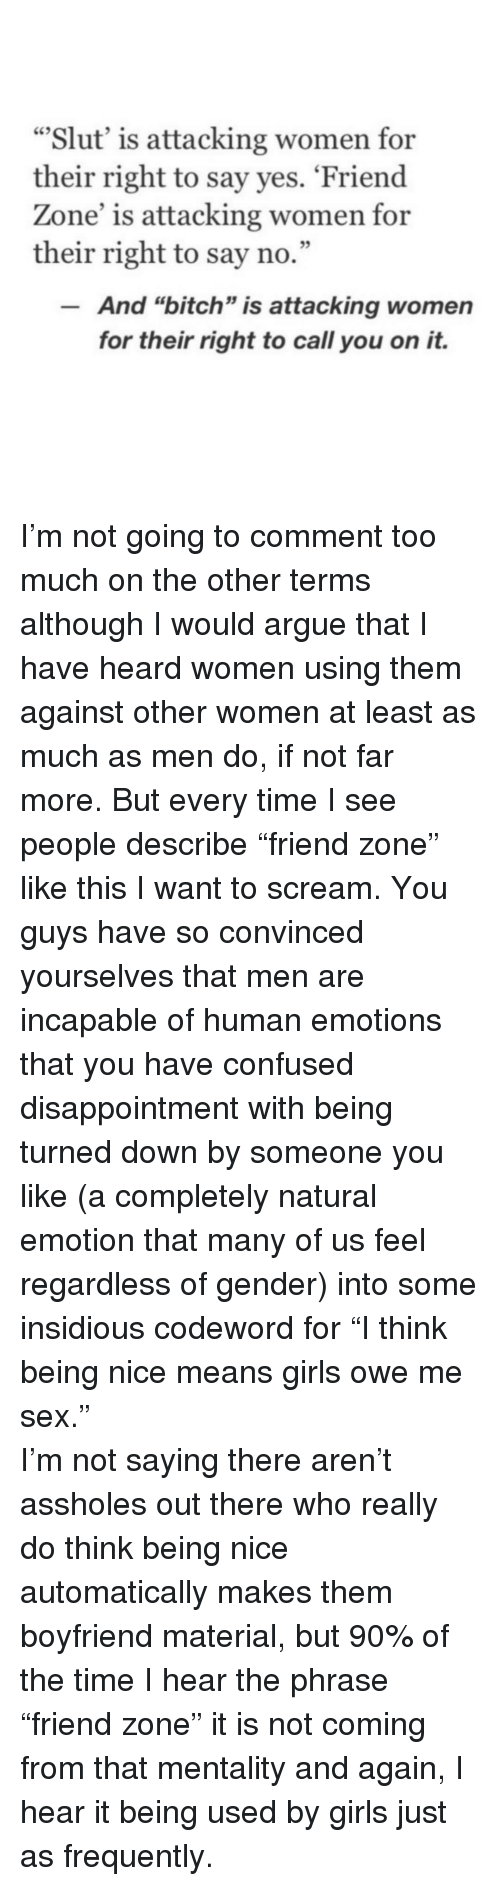 """Arguing, Bitch, and Confused: """"Slut' is attacking women for  their right to say yes. 'Friend  Zone' is attacking women for  their right to say no.""""  And """"bitch"""" is attacking women  for their right to call you on it. <p>I'm not going to comment too much on the other terms although I would argue that I have heard women using them against other women at least as much as men do, if not far more. But every time I see people describe """"friend zone"""" like this I want to scream. You guys have so convinced yourselves that men are incapable of human emotions that you have confused disappointment with being turned down by someone you like (a completely natural emotion that many of us feel regardless of gender) into some insidious codeword for """"I think being nice means girls owe me sex."""" </p>  <p>I'm not saying there aren't assholes out there who really do think being nice automatically makes them boyfriend material, but 90% of the time I hear the phrase """"friend zone"""" it is not coming from that mentality and again, I hear it being used by girls just as frequently.</p>"""